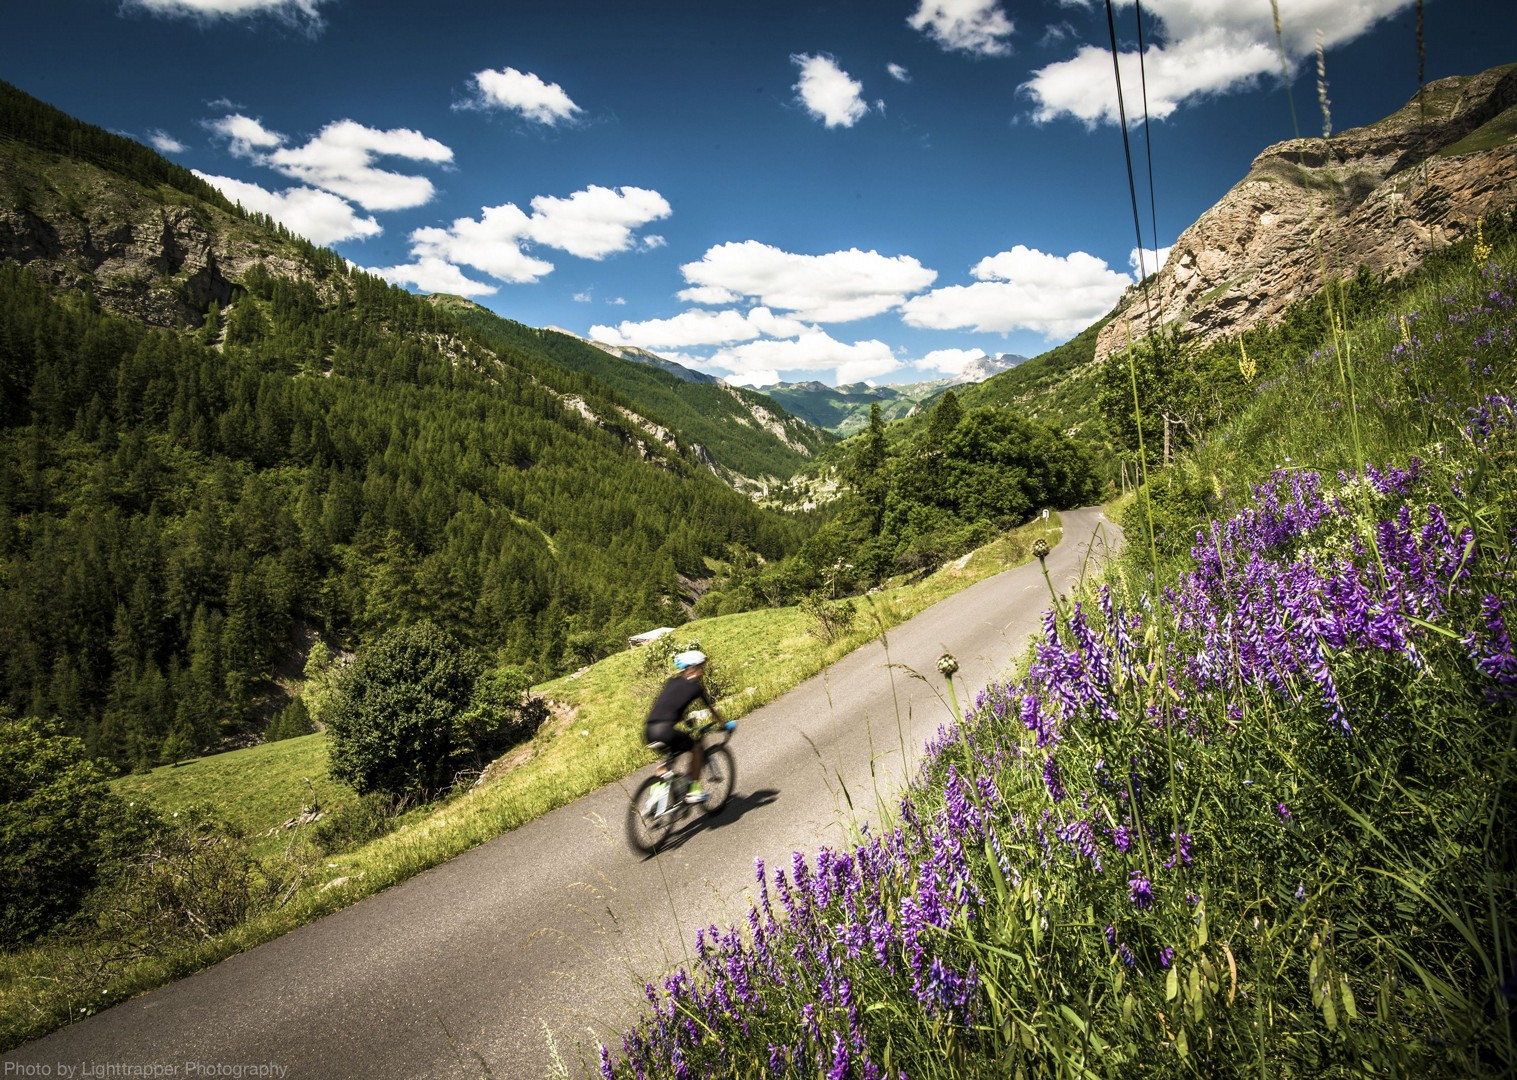 provencal-lavender-french-alpes-road-cycling-trip.jpg - France - Alps - Mont Ventoux to Alpe d'Huez - Guided Road Cycling Holiday - Road Cycling